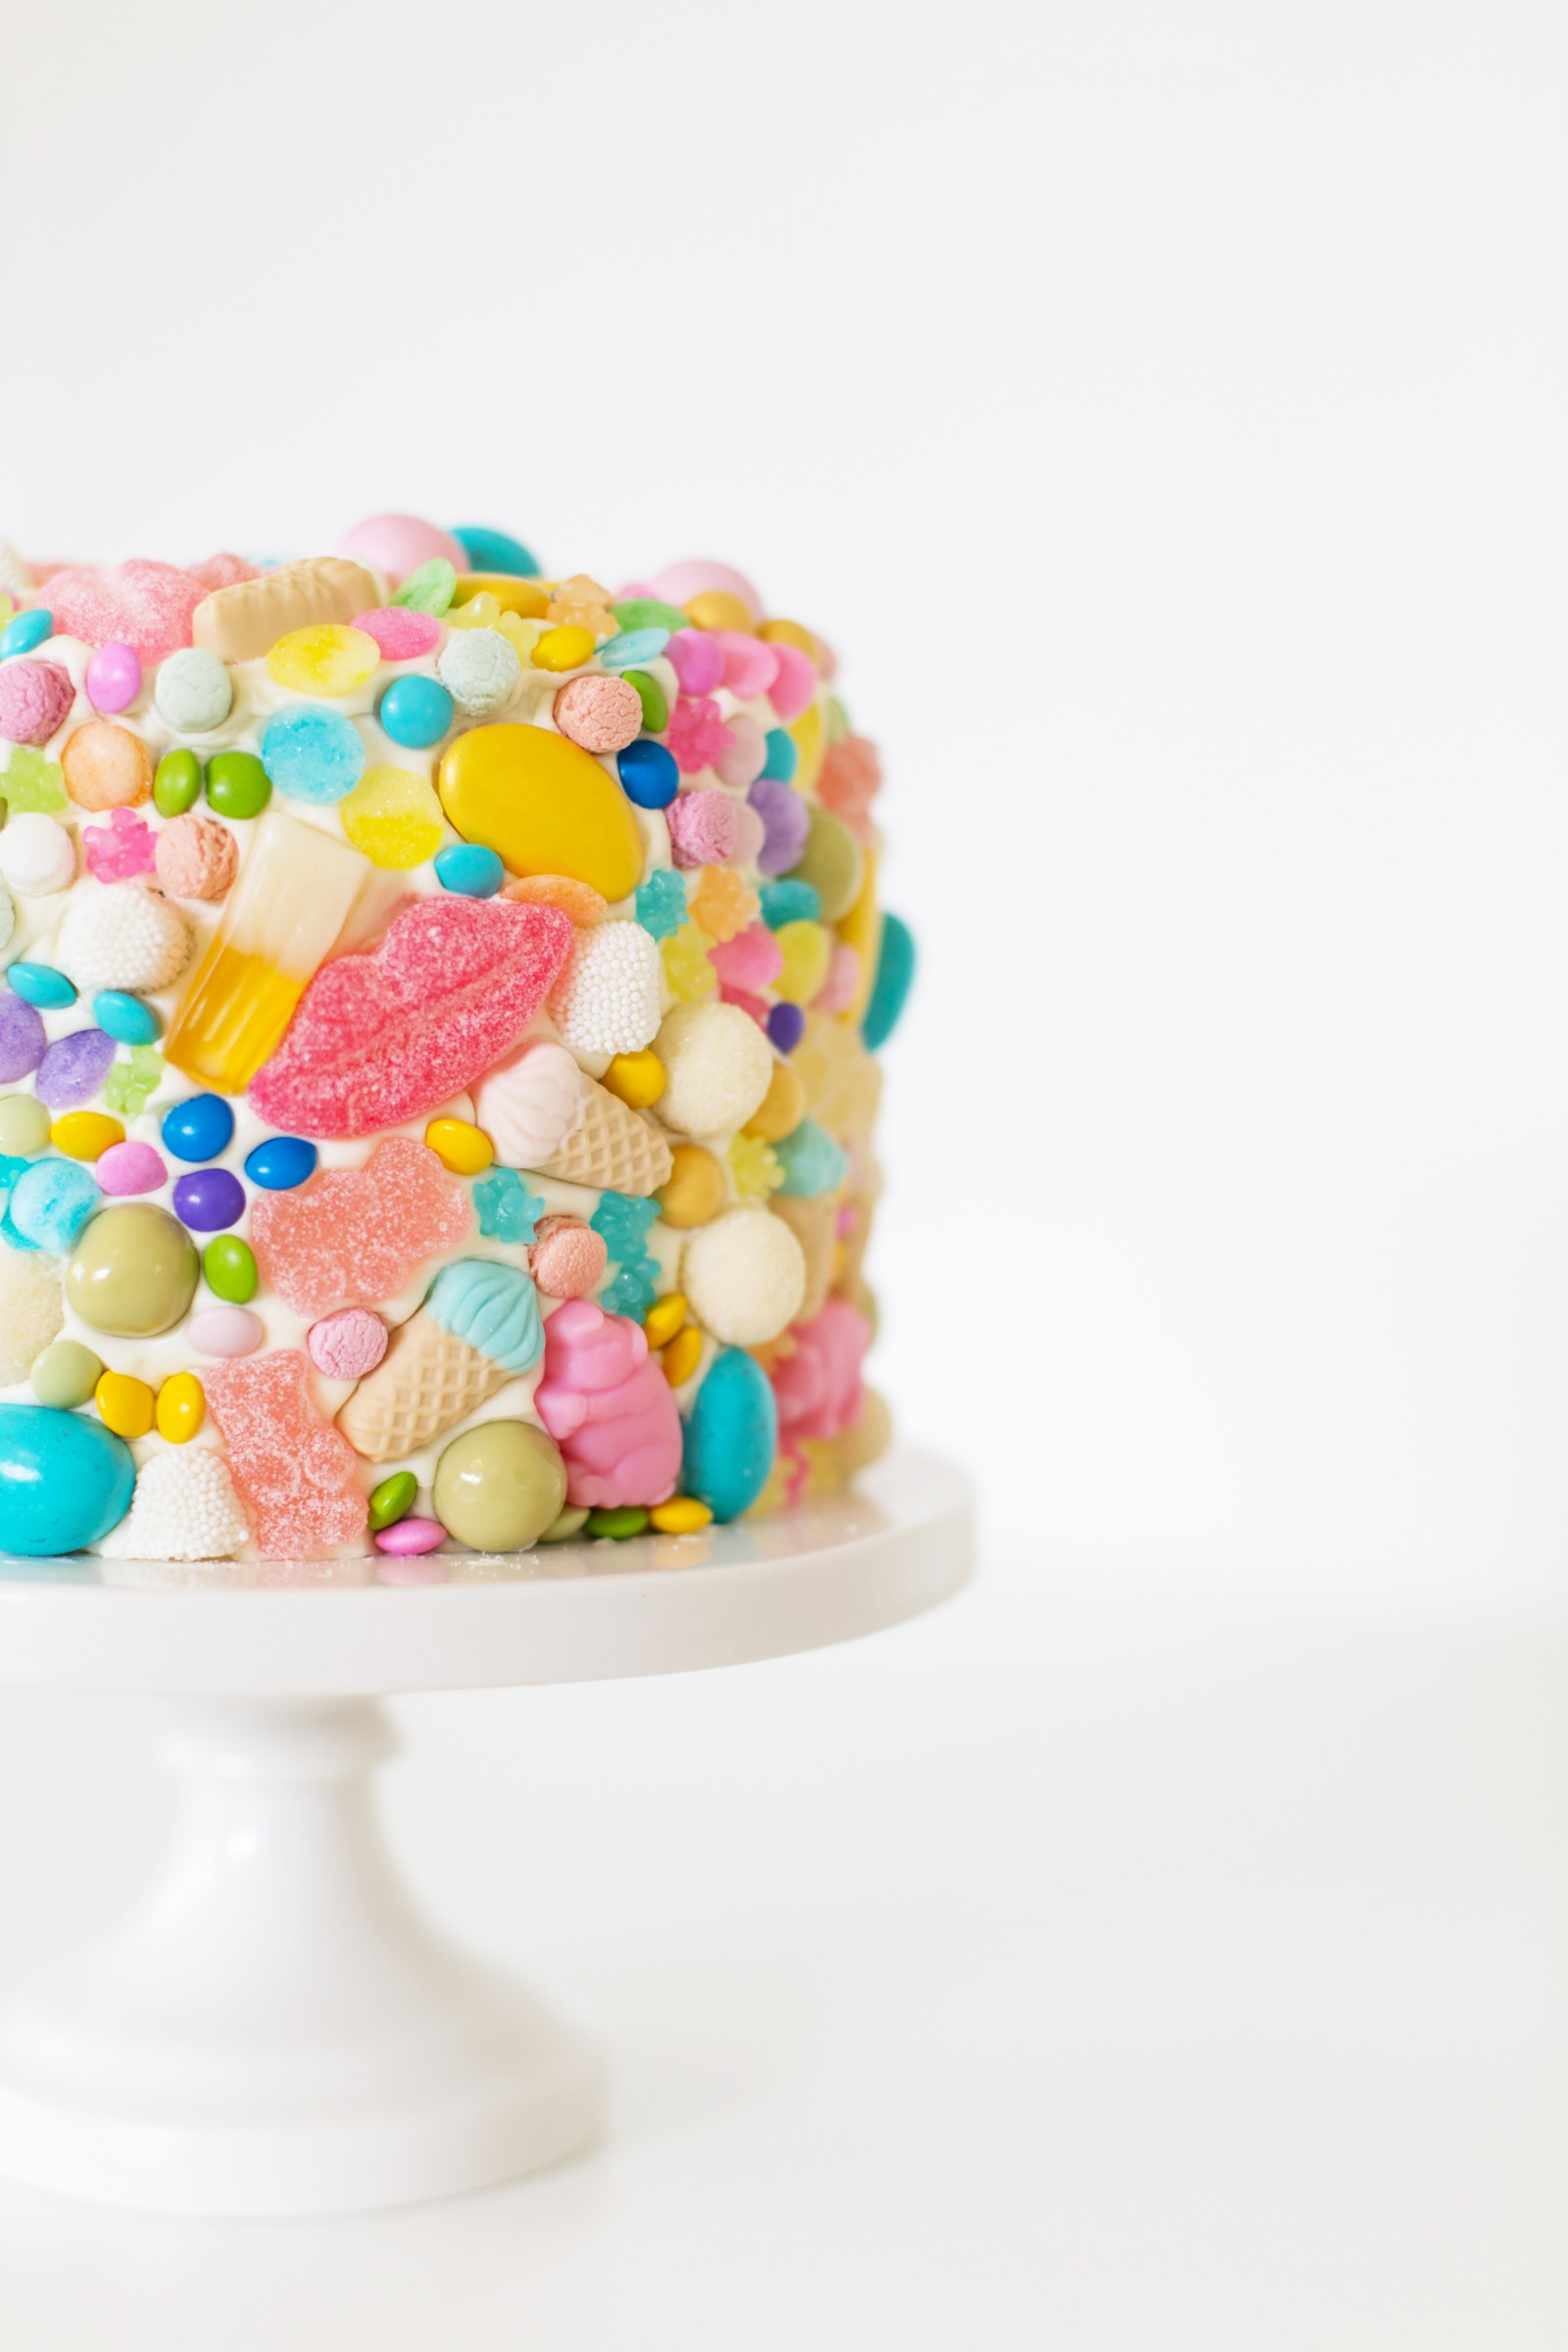 41 Easy Birthday Cake Decorating Ideas That Only Look ...